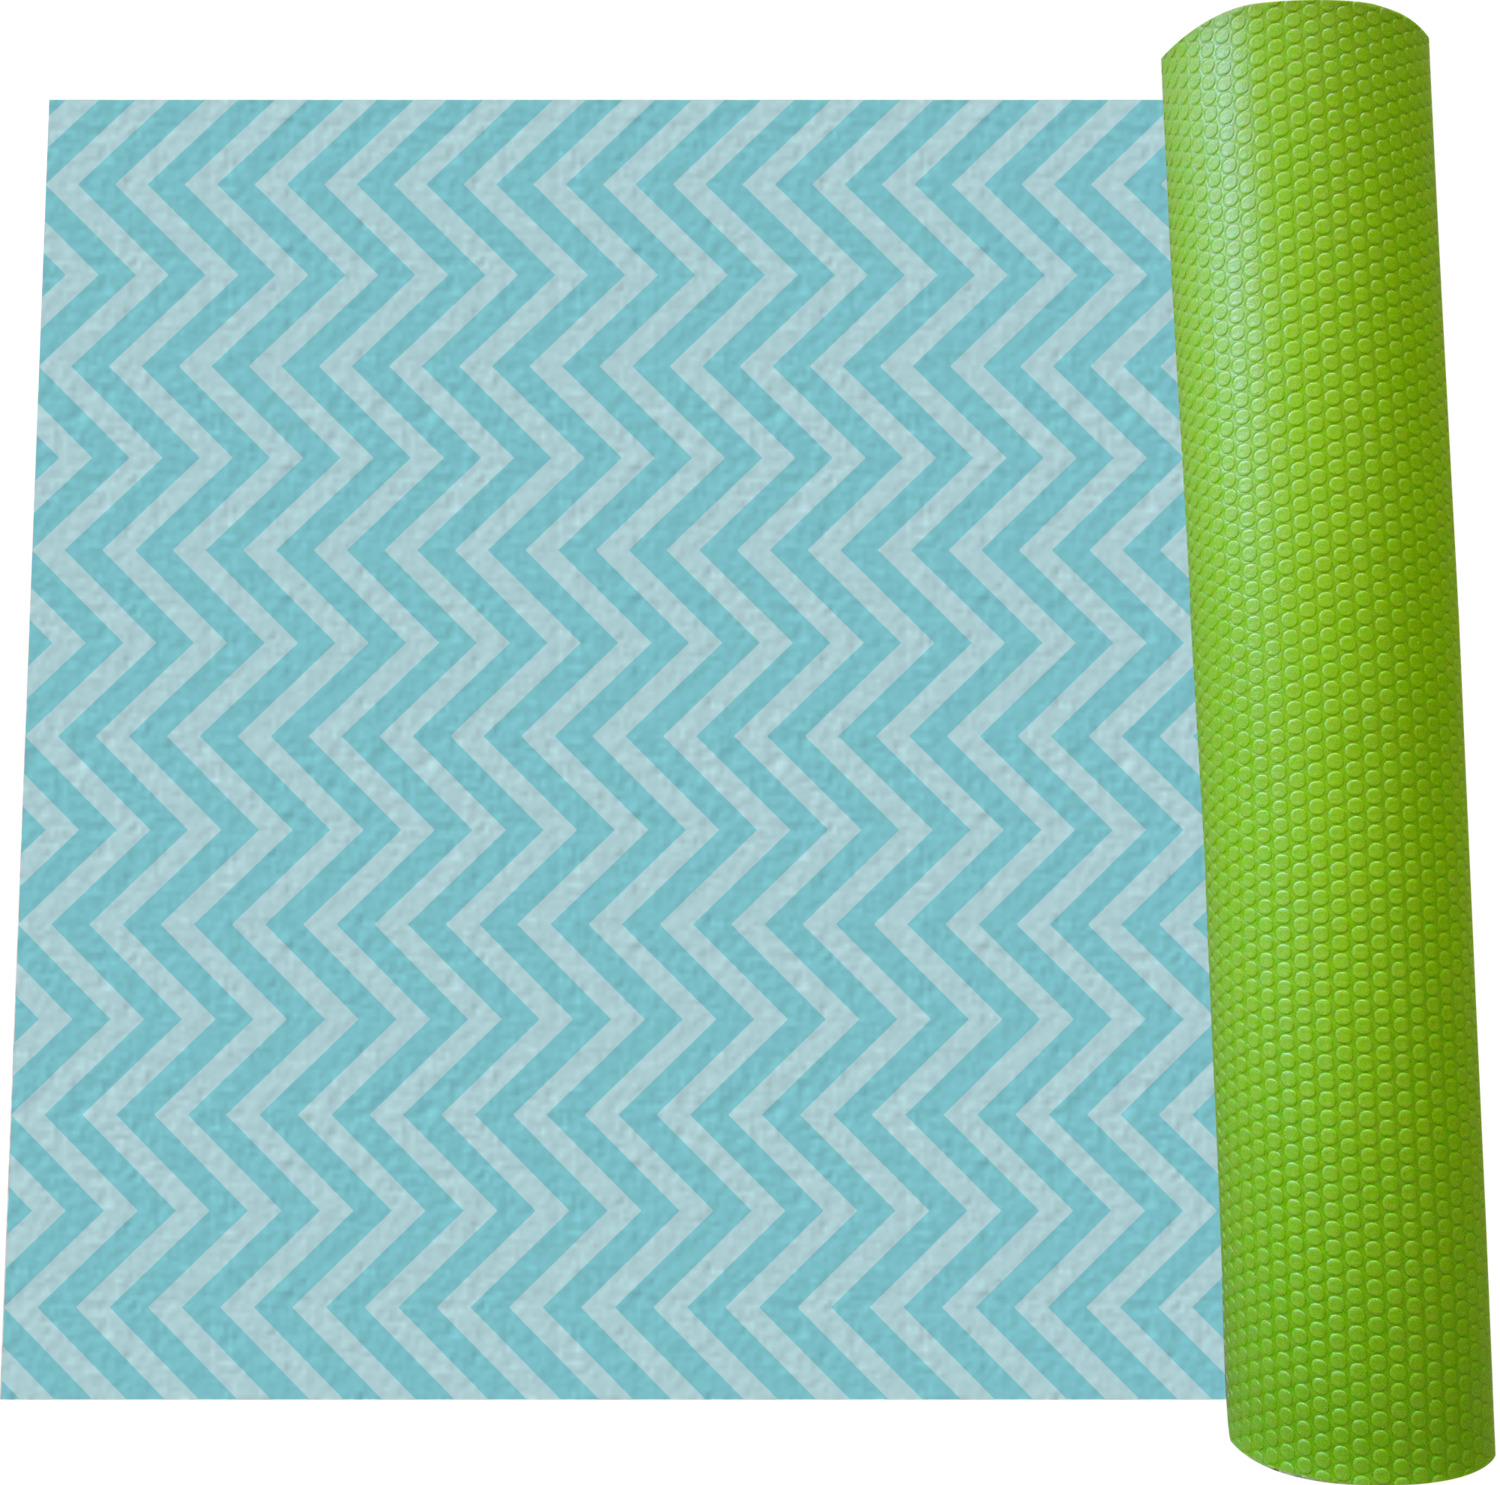 Design Your Own Yoga Mat (Personalized)